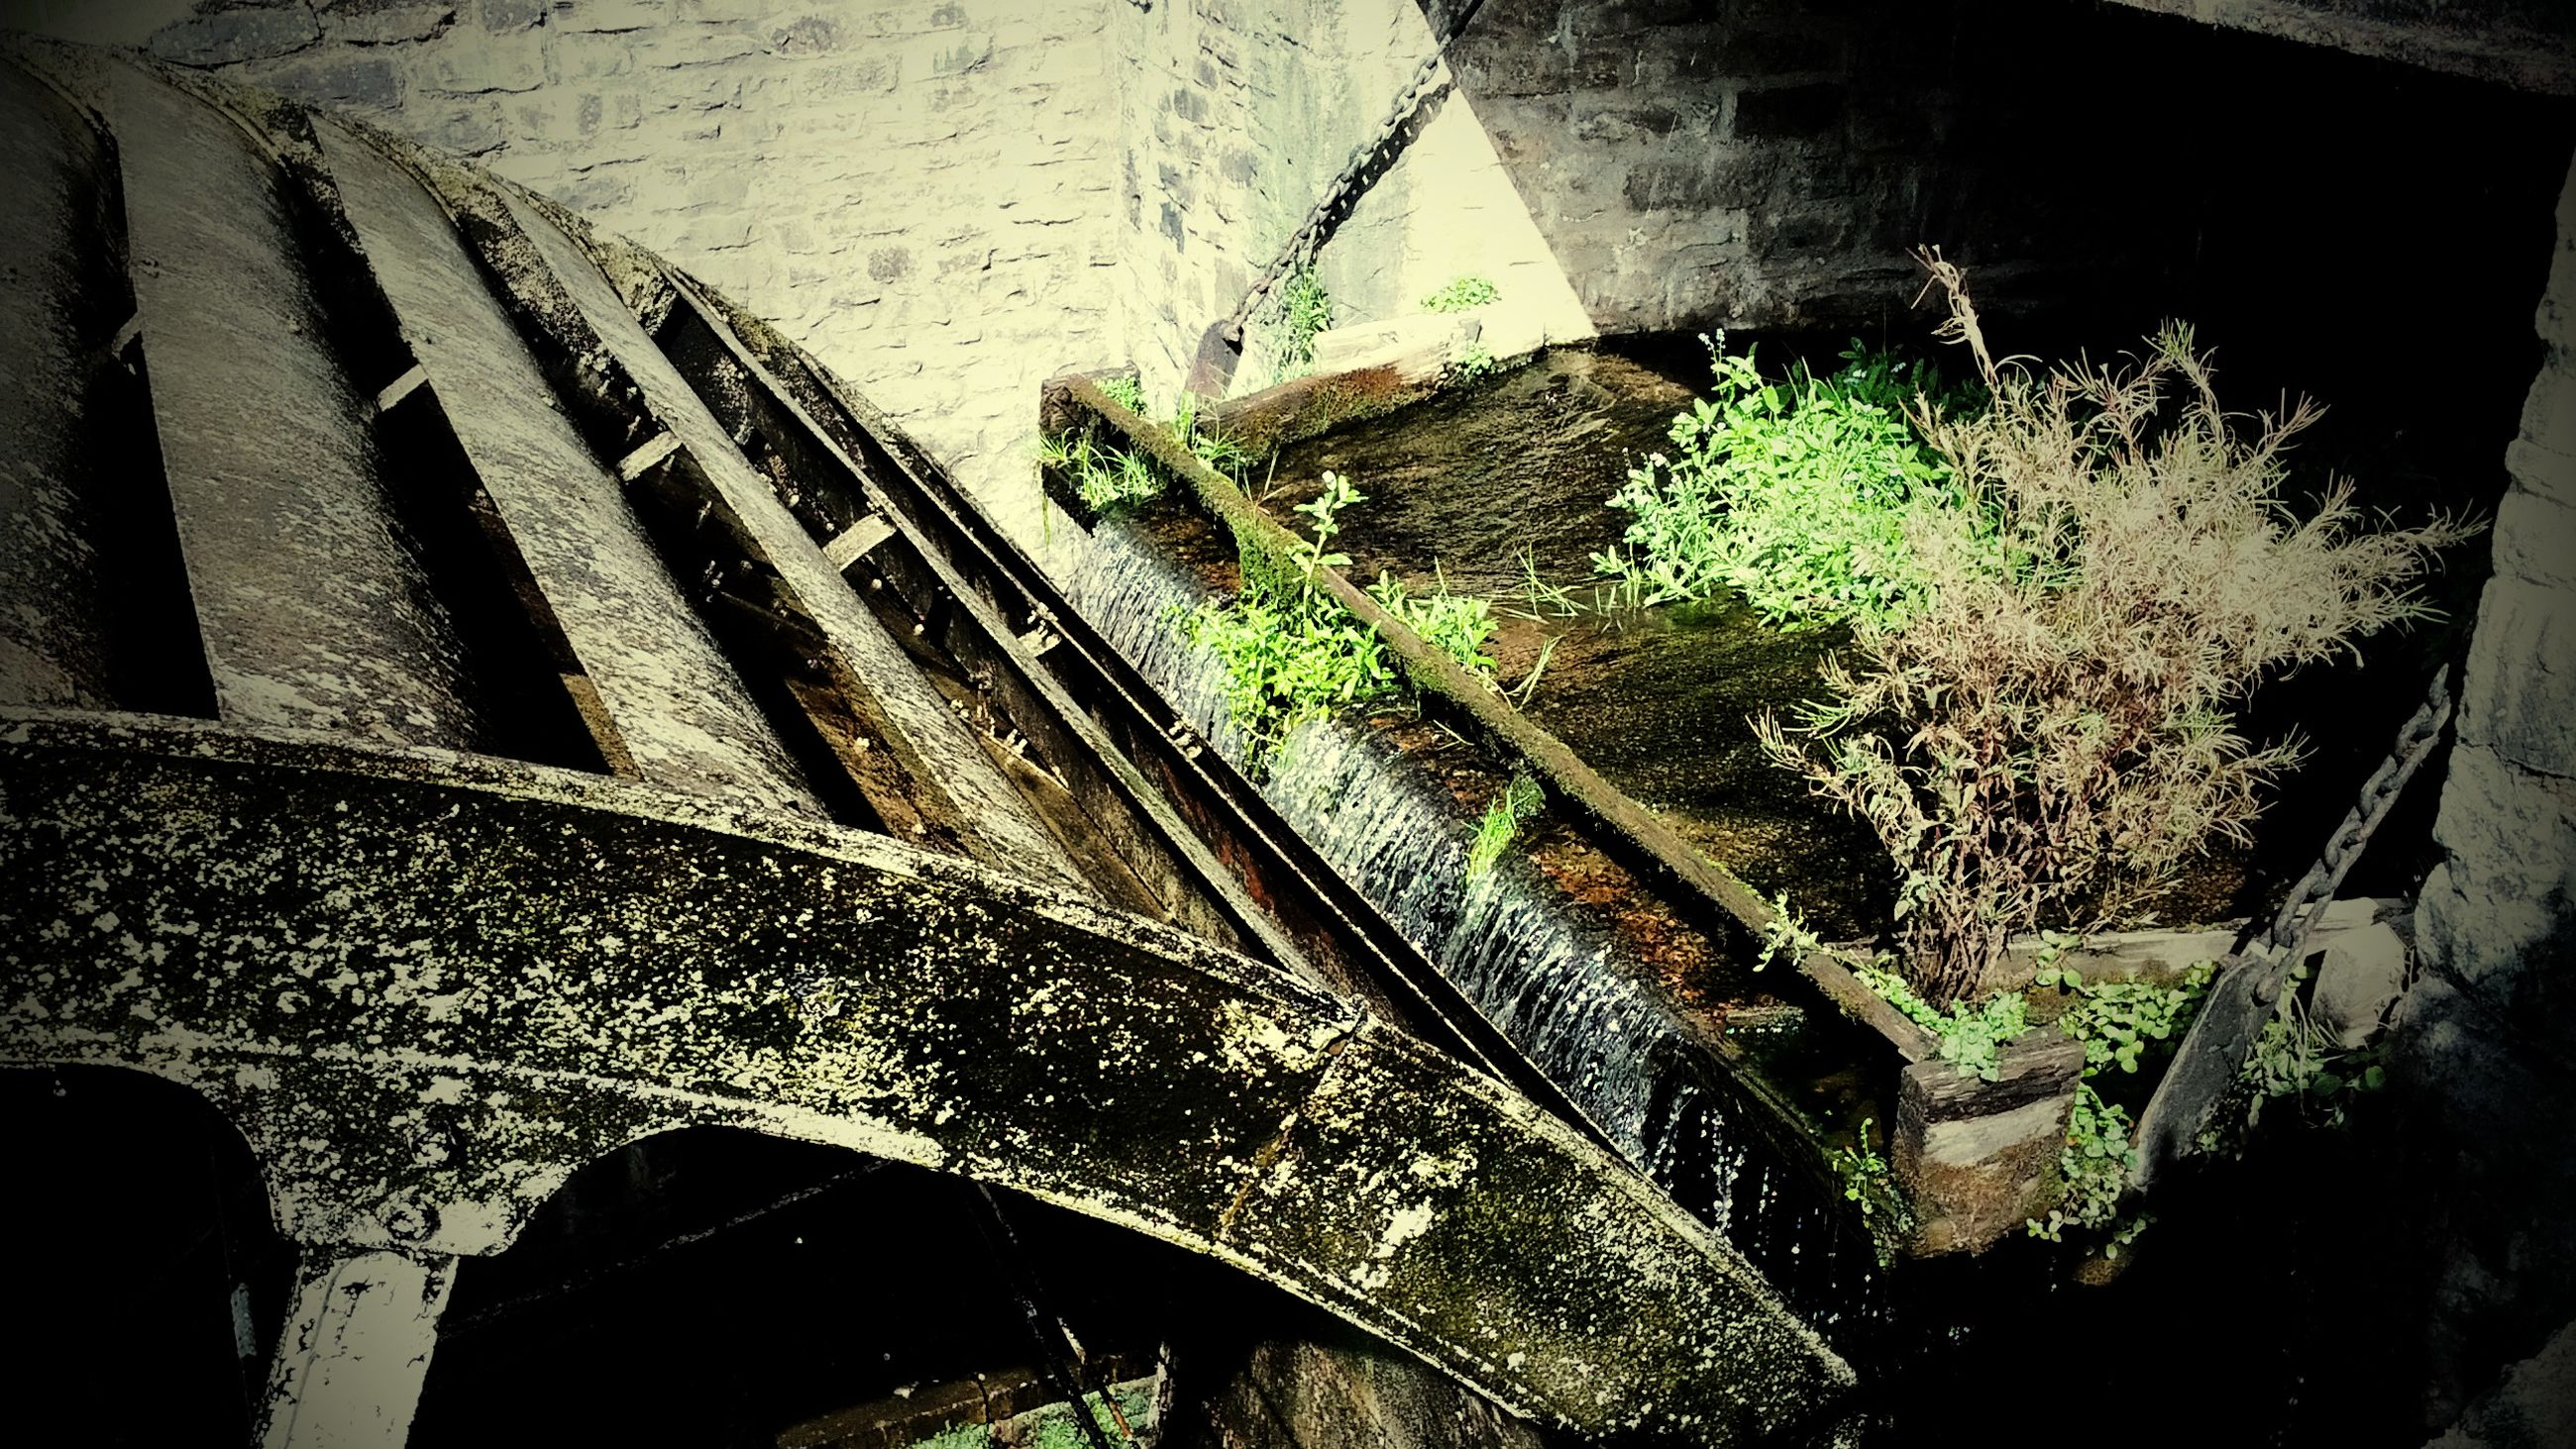 built structure, architecture, growth, plant, transportation, wall - building feature, high angle view, outdoors, sunlight, close-up, day, no people, old, low angle view, nature, building exterior, damaged, abandoned, reflection, water